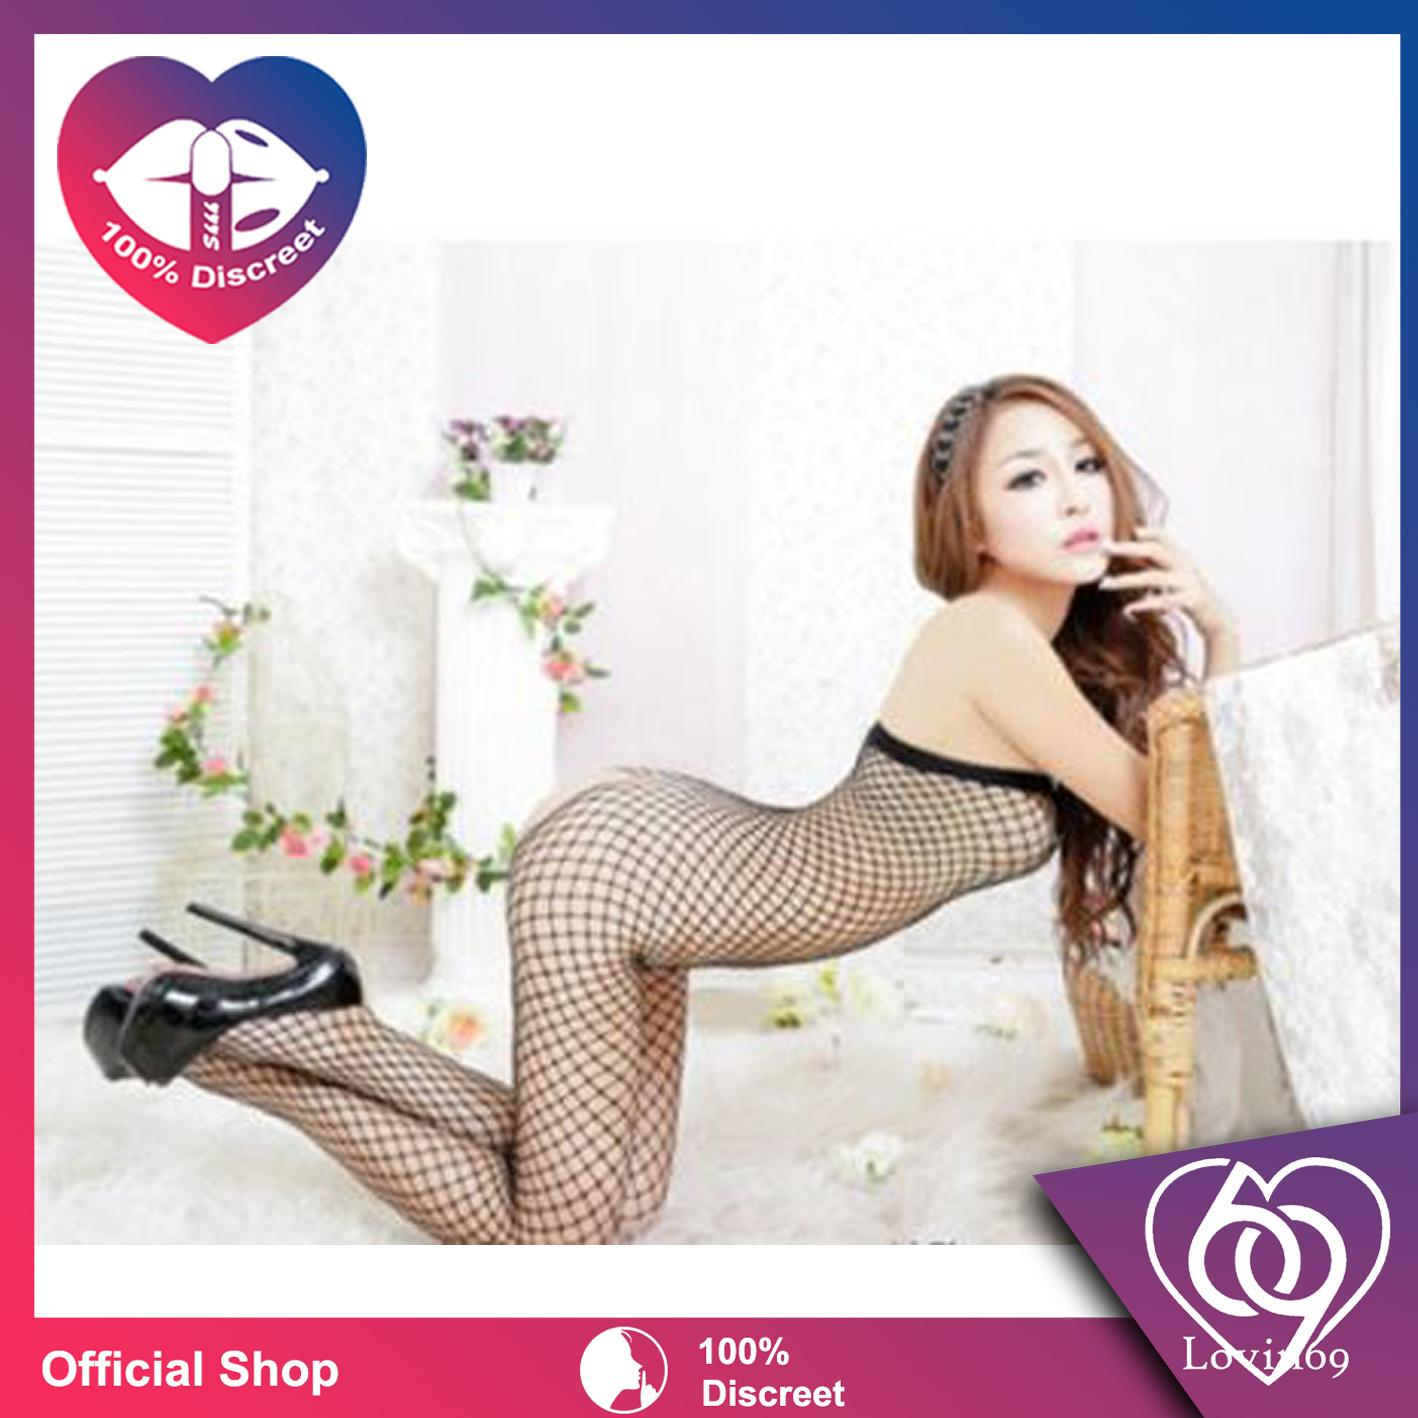 fc65646623 Lovin69 Open Crotch Sexy Fishnet Body Stockings AC0039